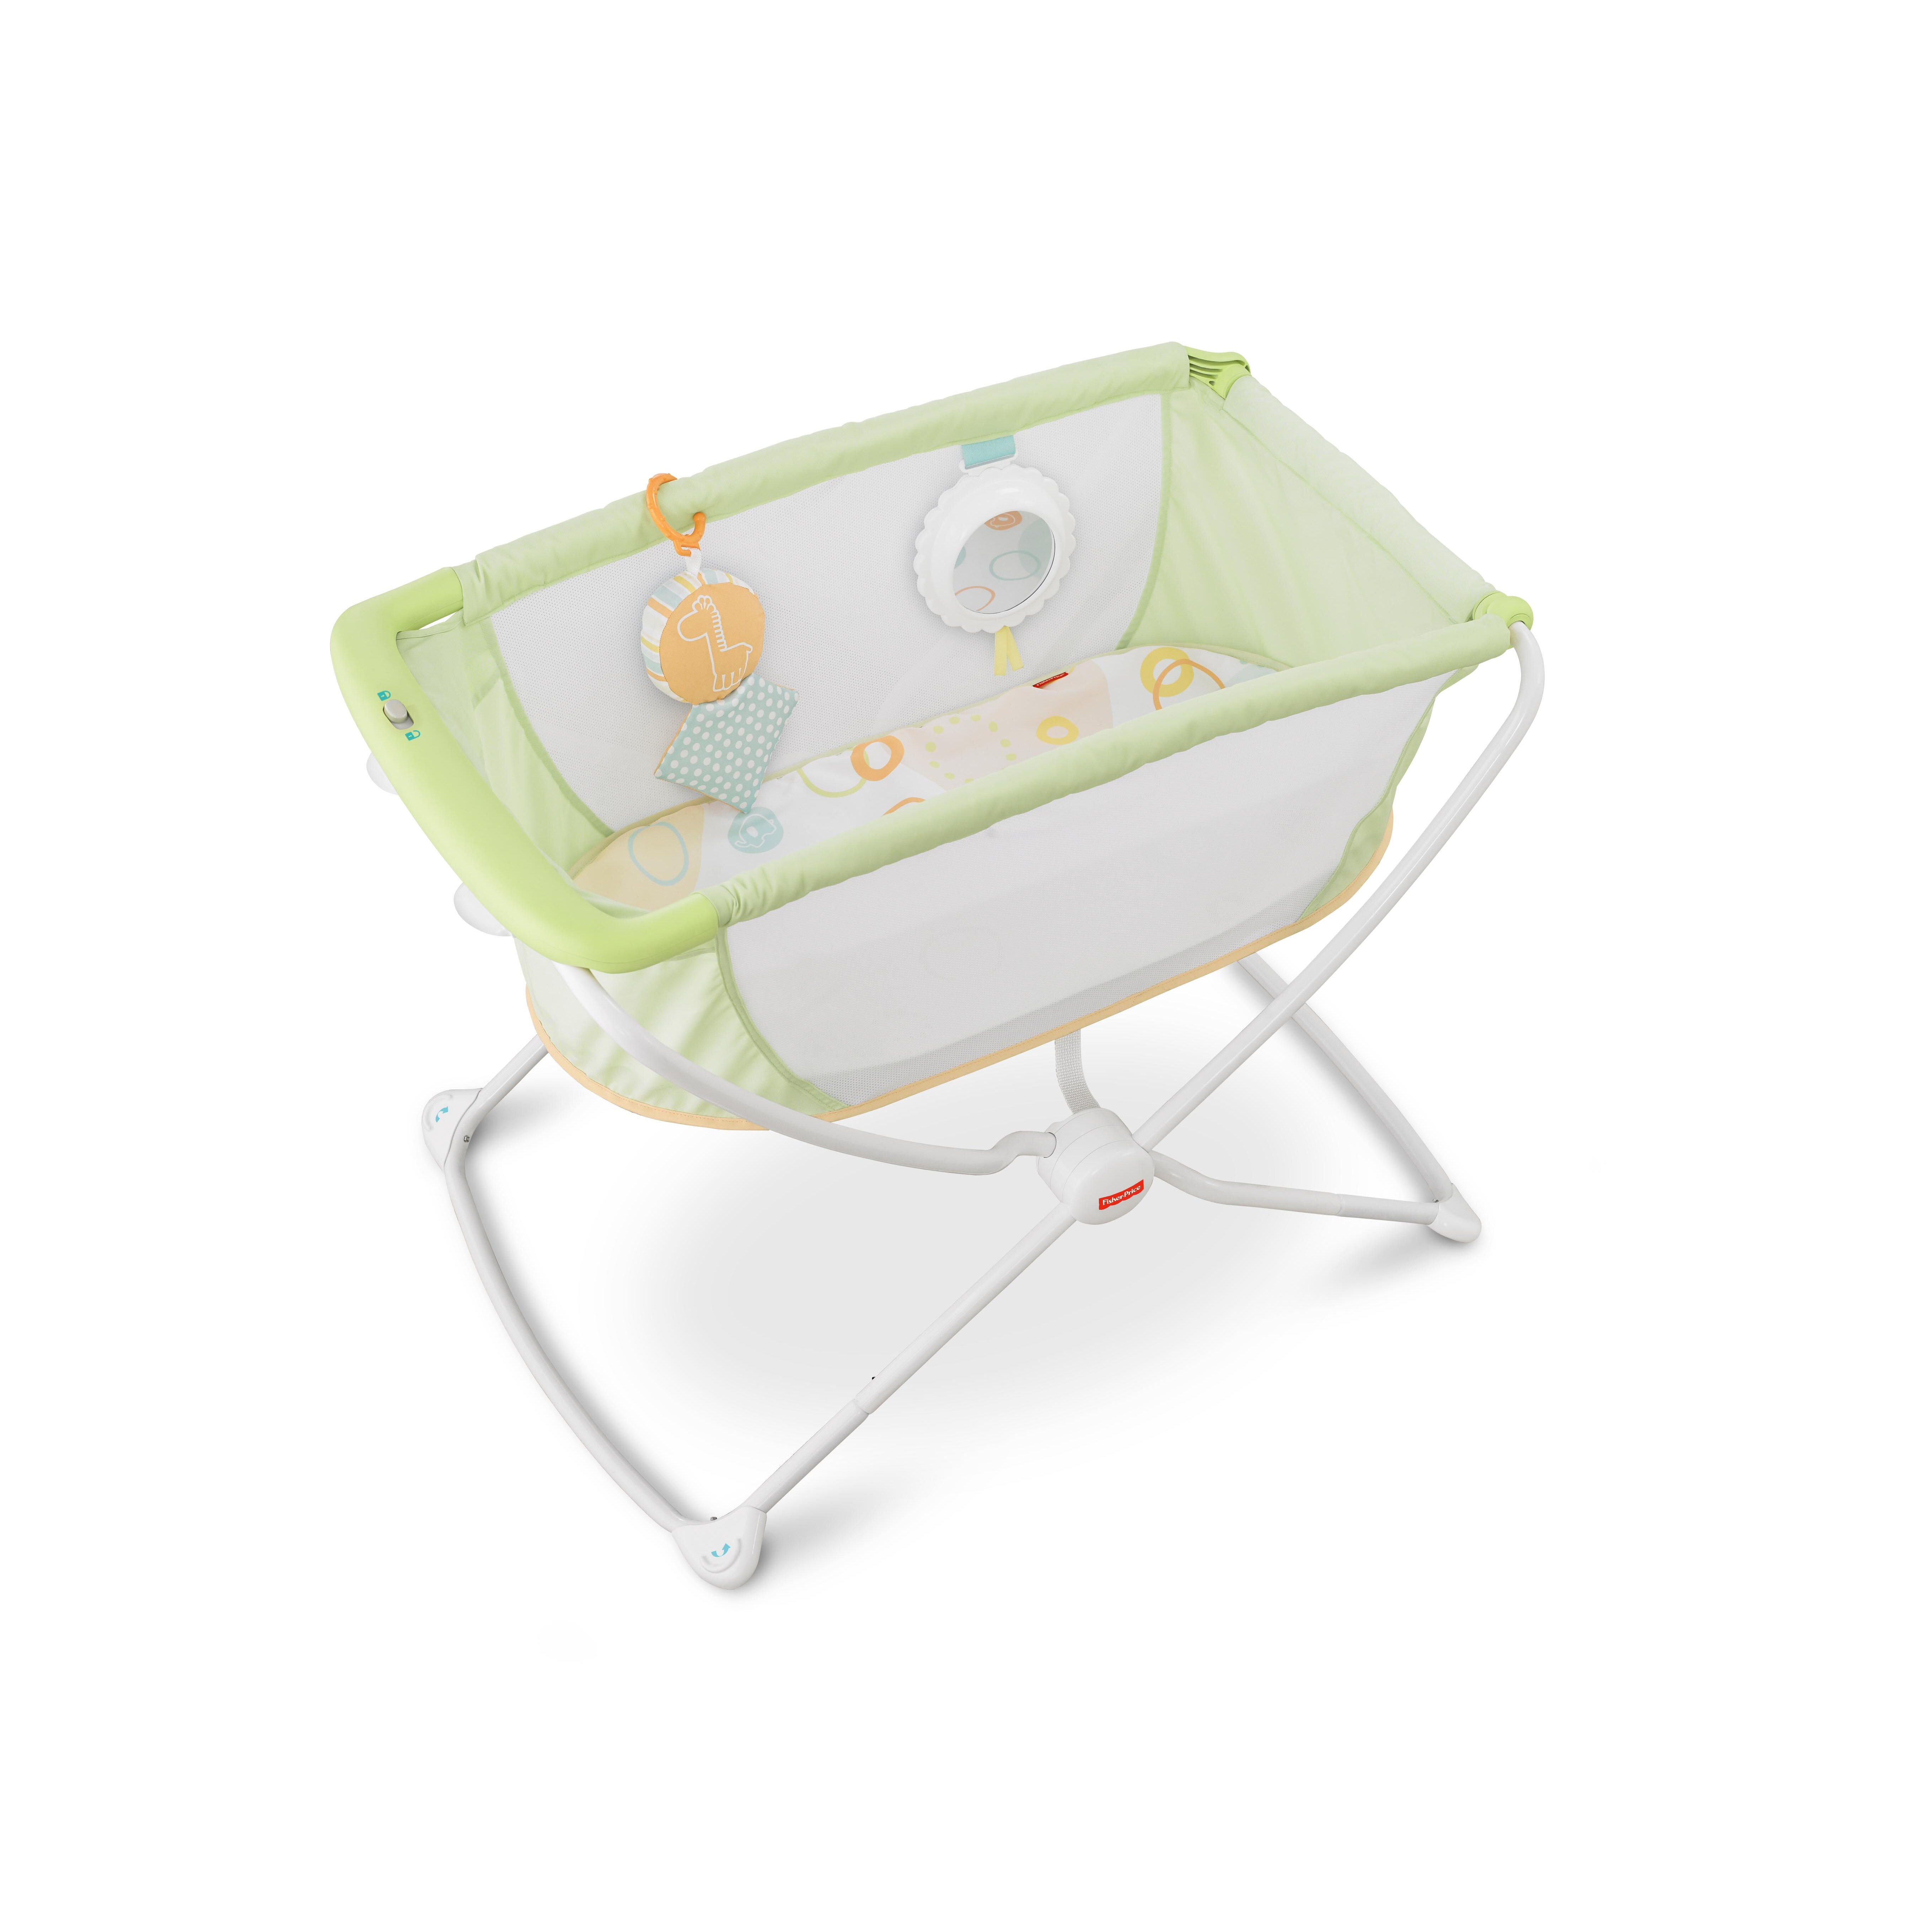 Fisher price rock and play portable bassinet reviews Portable bassinet